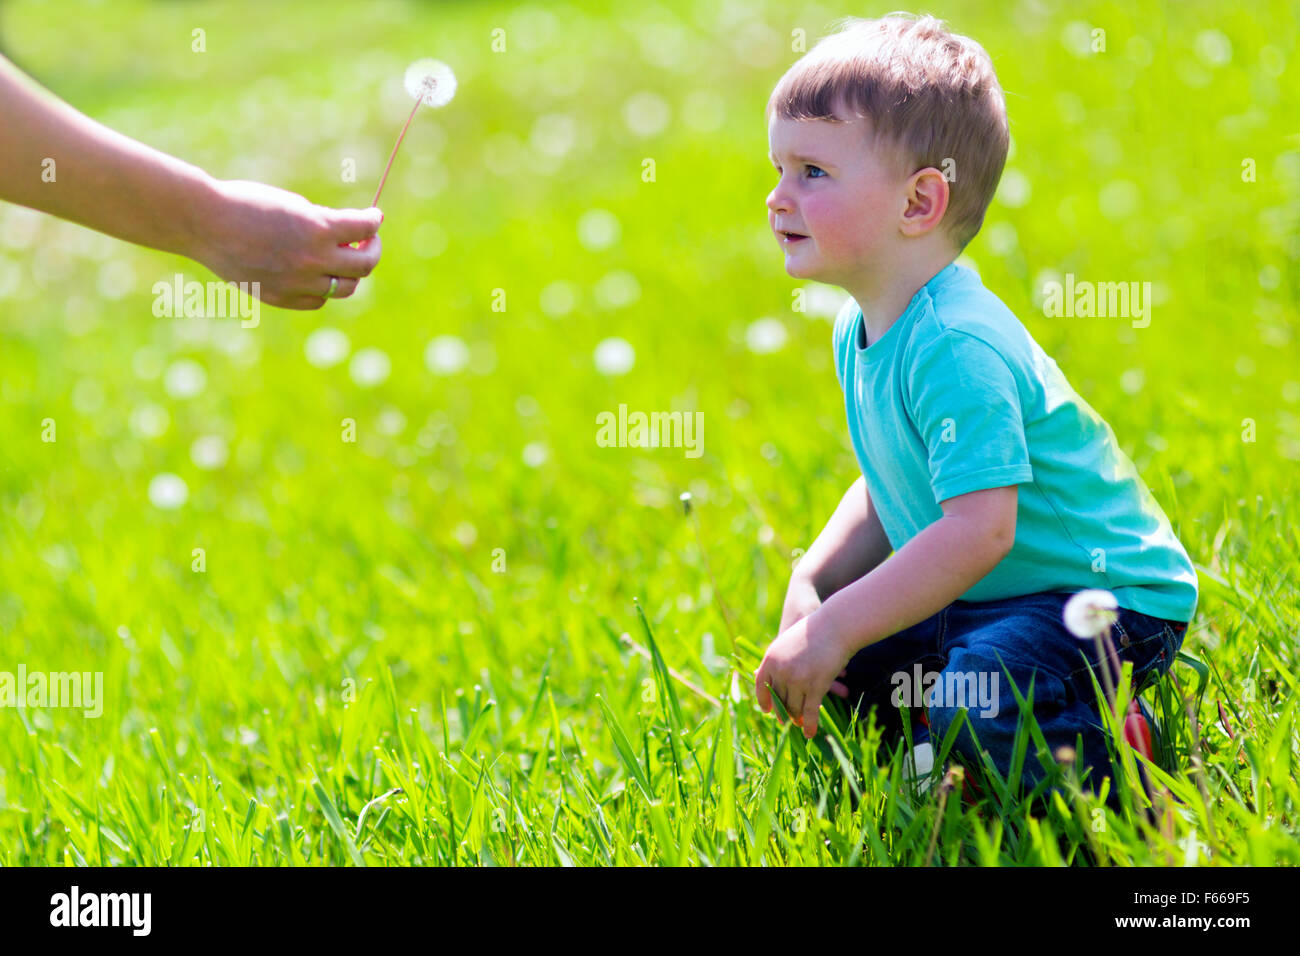 Boy receiving a dandelion in the field - Stock Image